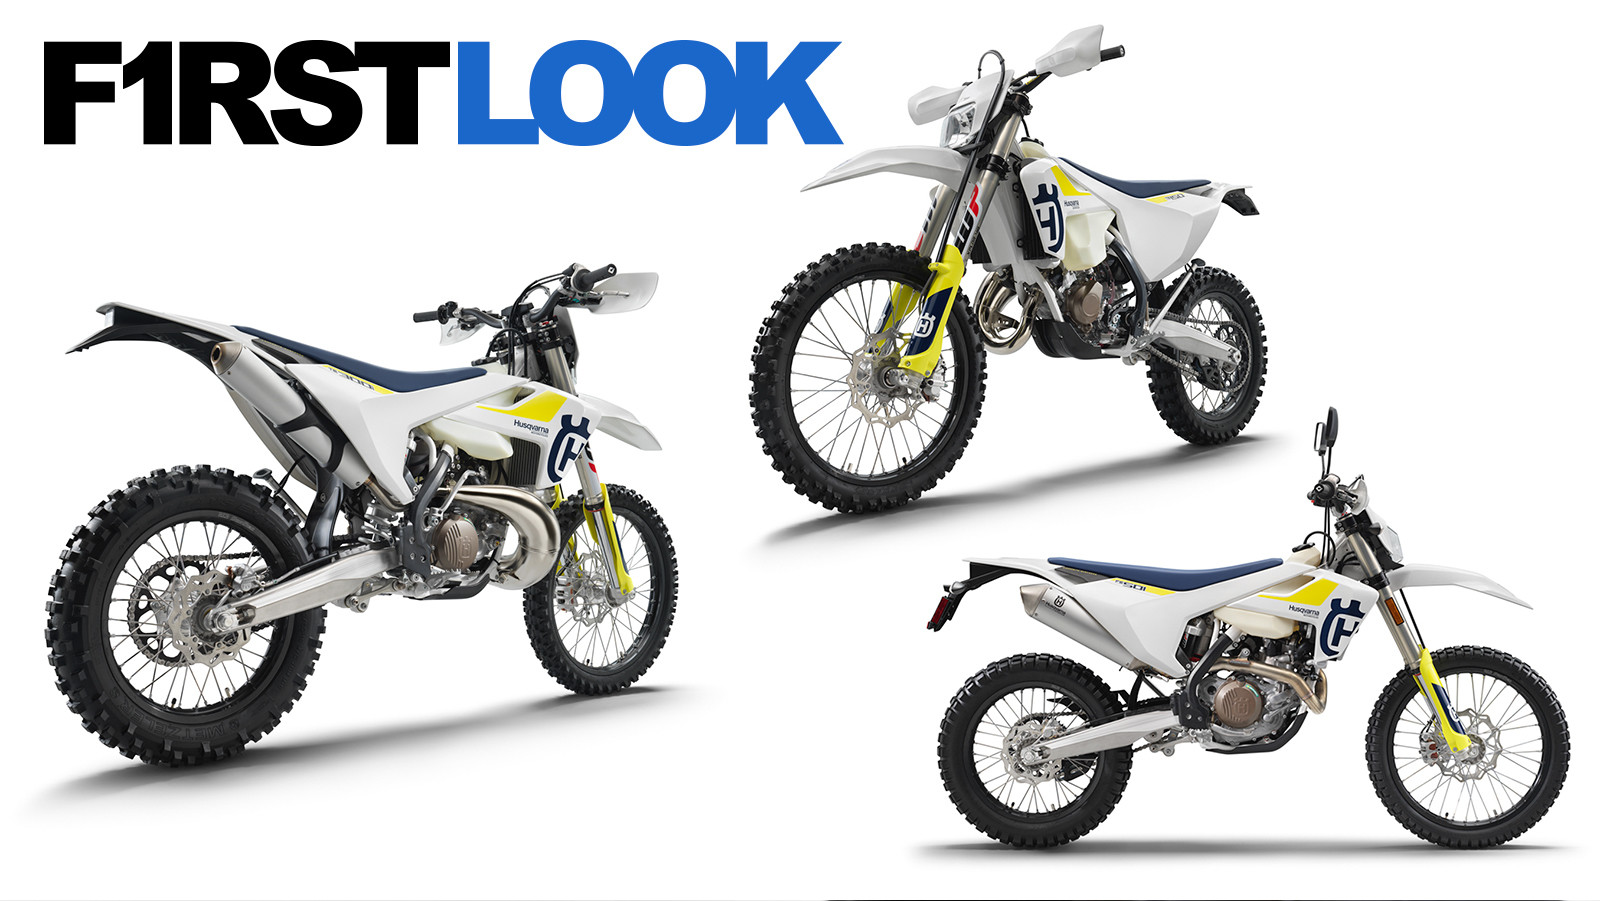 First Look: 2019 Husqvarna FE and TE Models